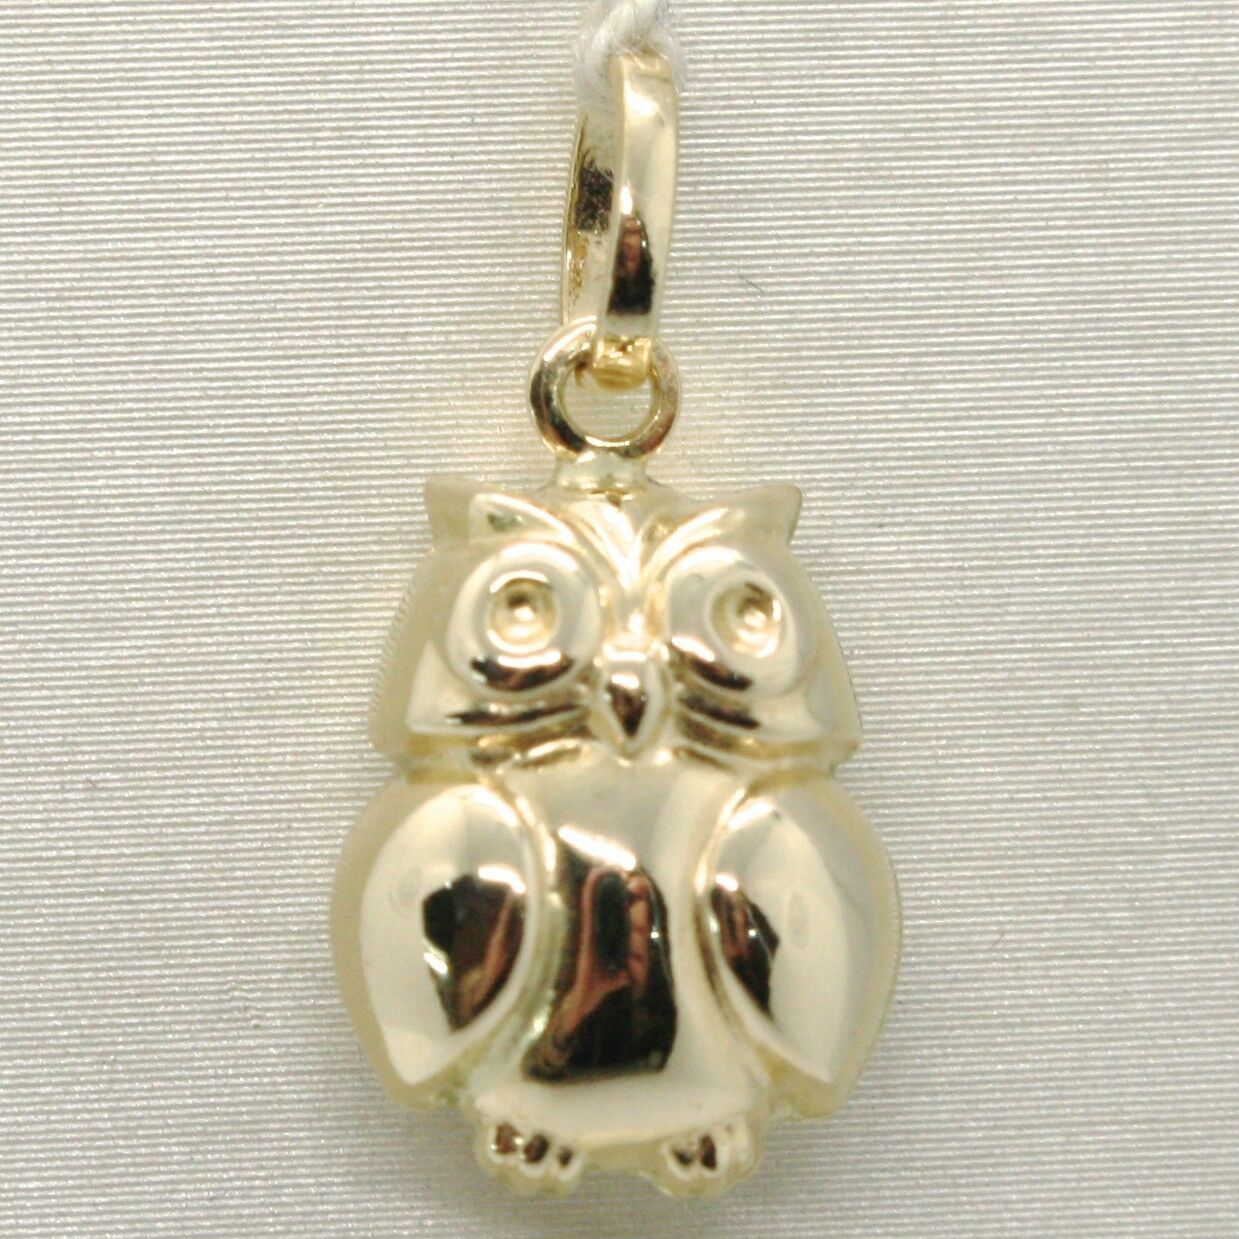 18K YELLOW GOLD ROUNDED LUCKY OWL PENDANT CHARM 22 MM SMOOTH MADE IN ITALY